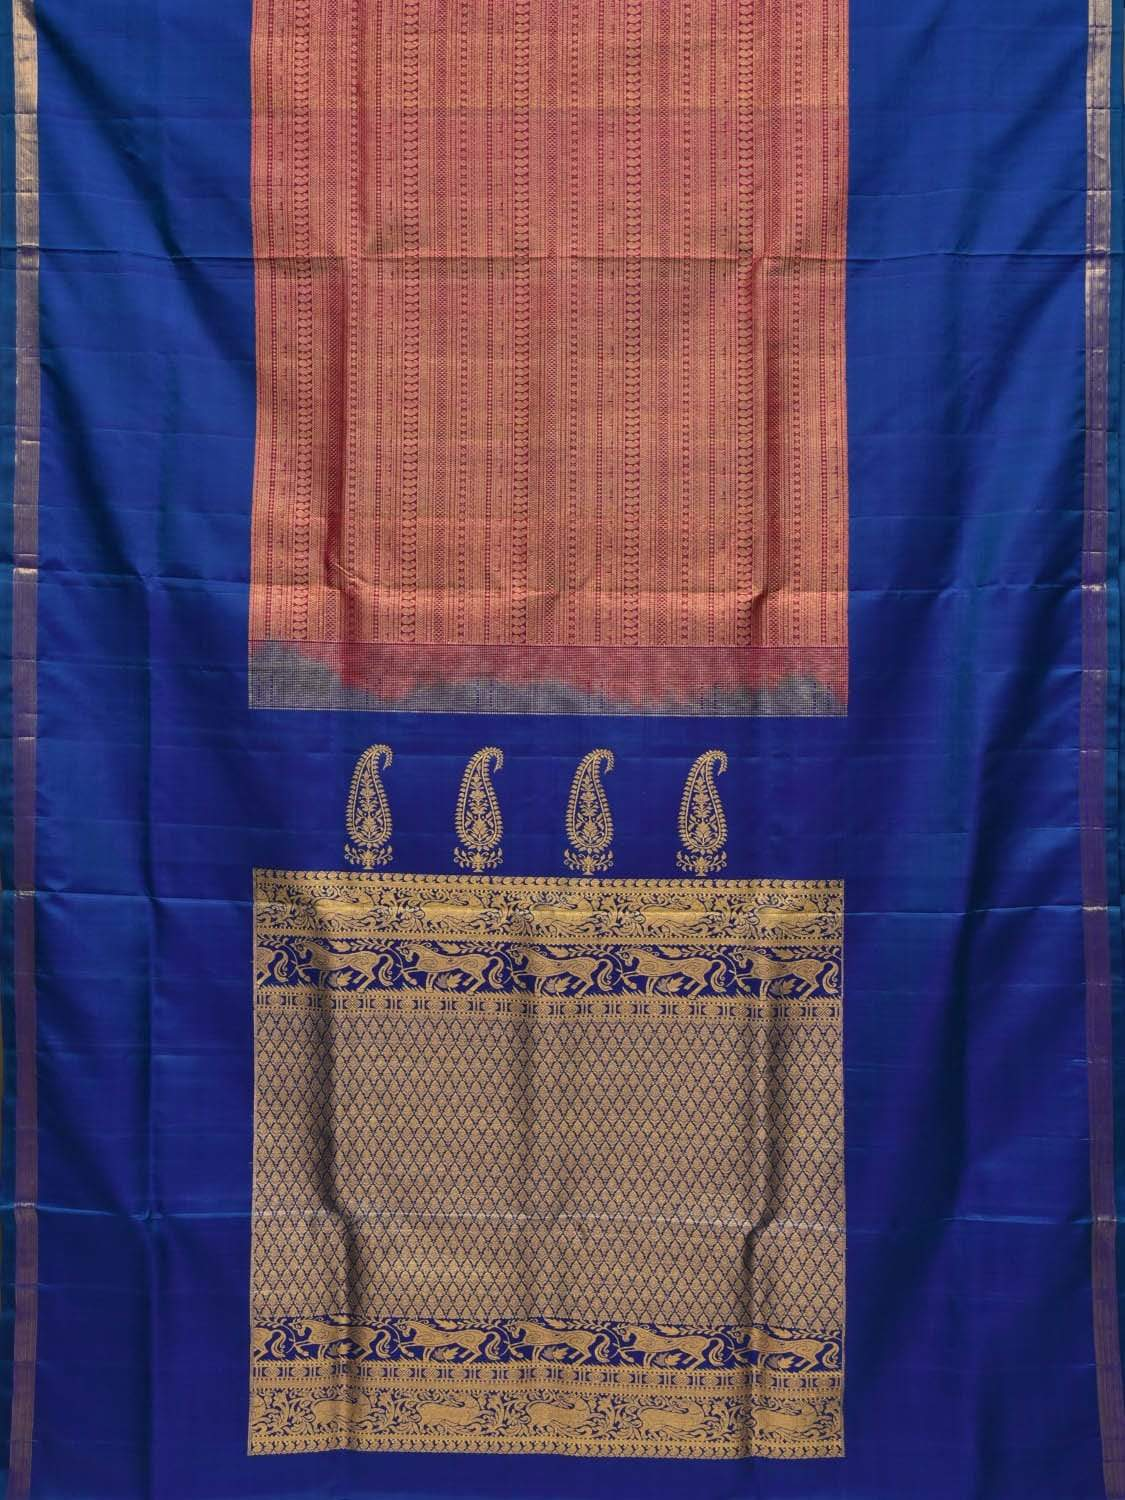 Blue Kanchipuram Silk Handloom Saree with Mango Pallu and Middle Brocade Design k0489